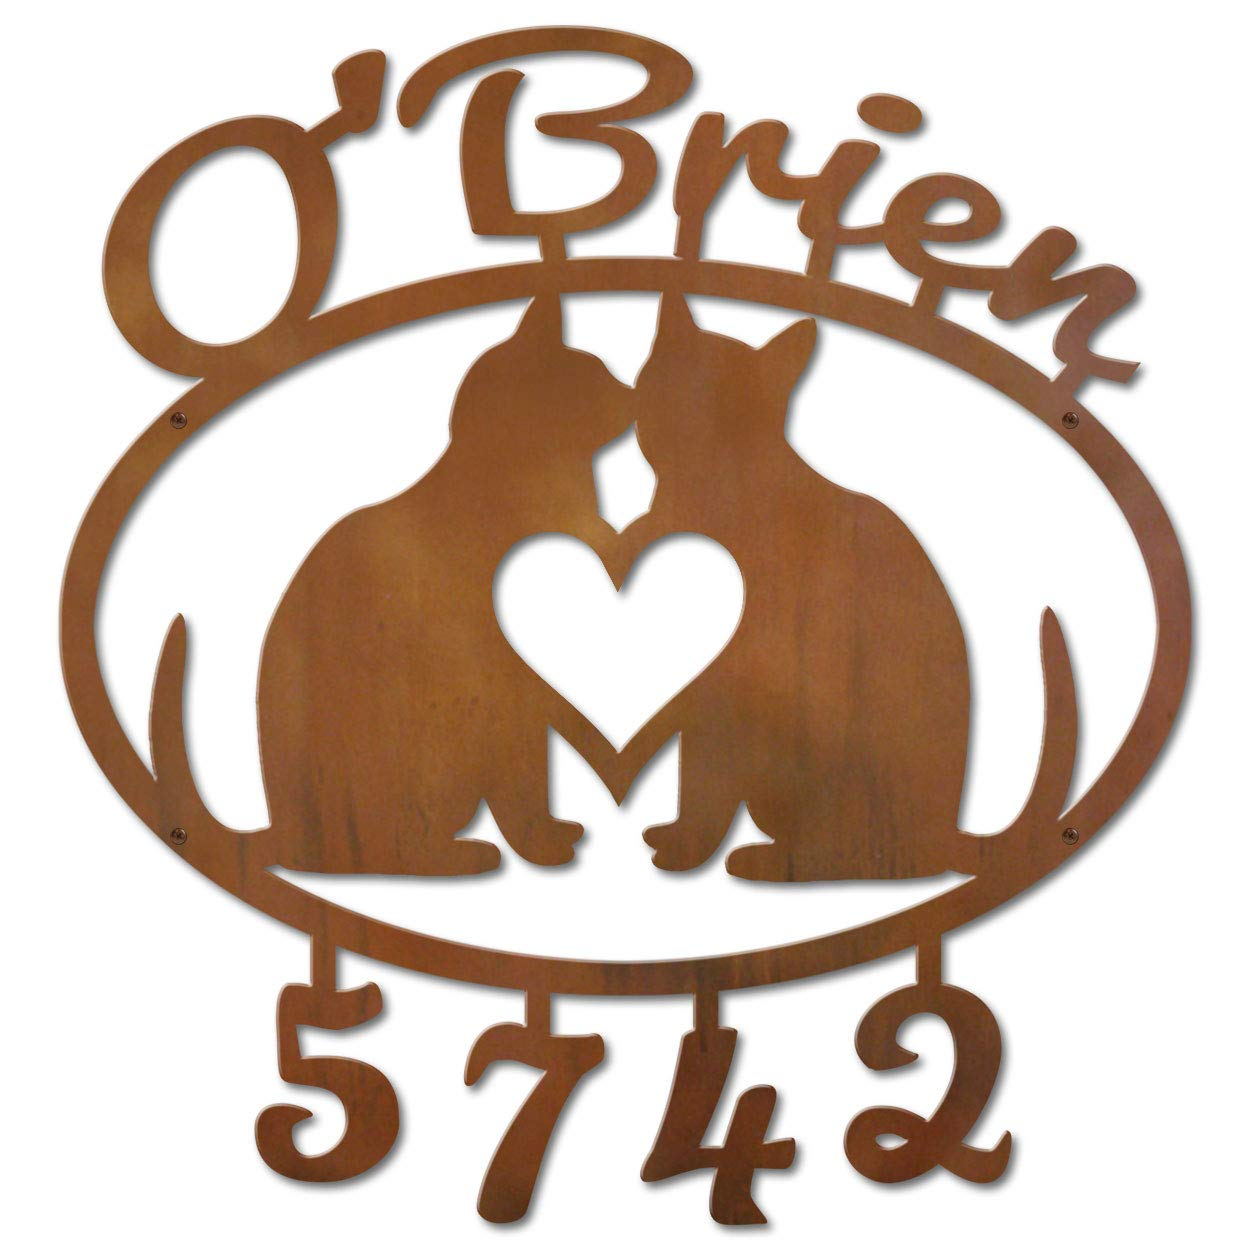 Cold Nose Creations 22in Oval Steel Address Name and Numbers Sign - Love Cats - Rust Metal Finish - Made in USA